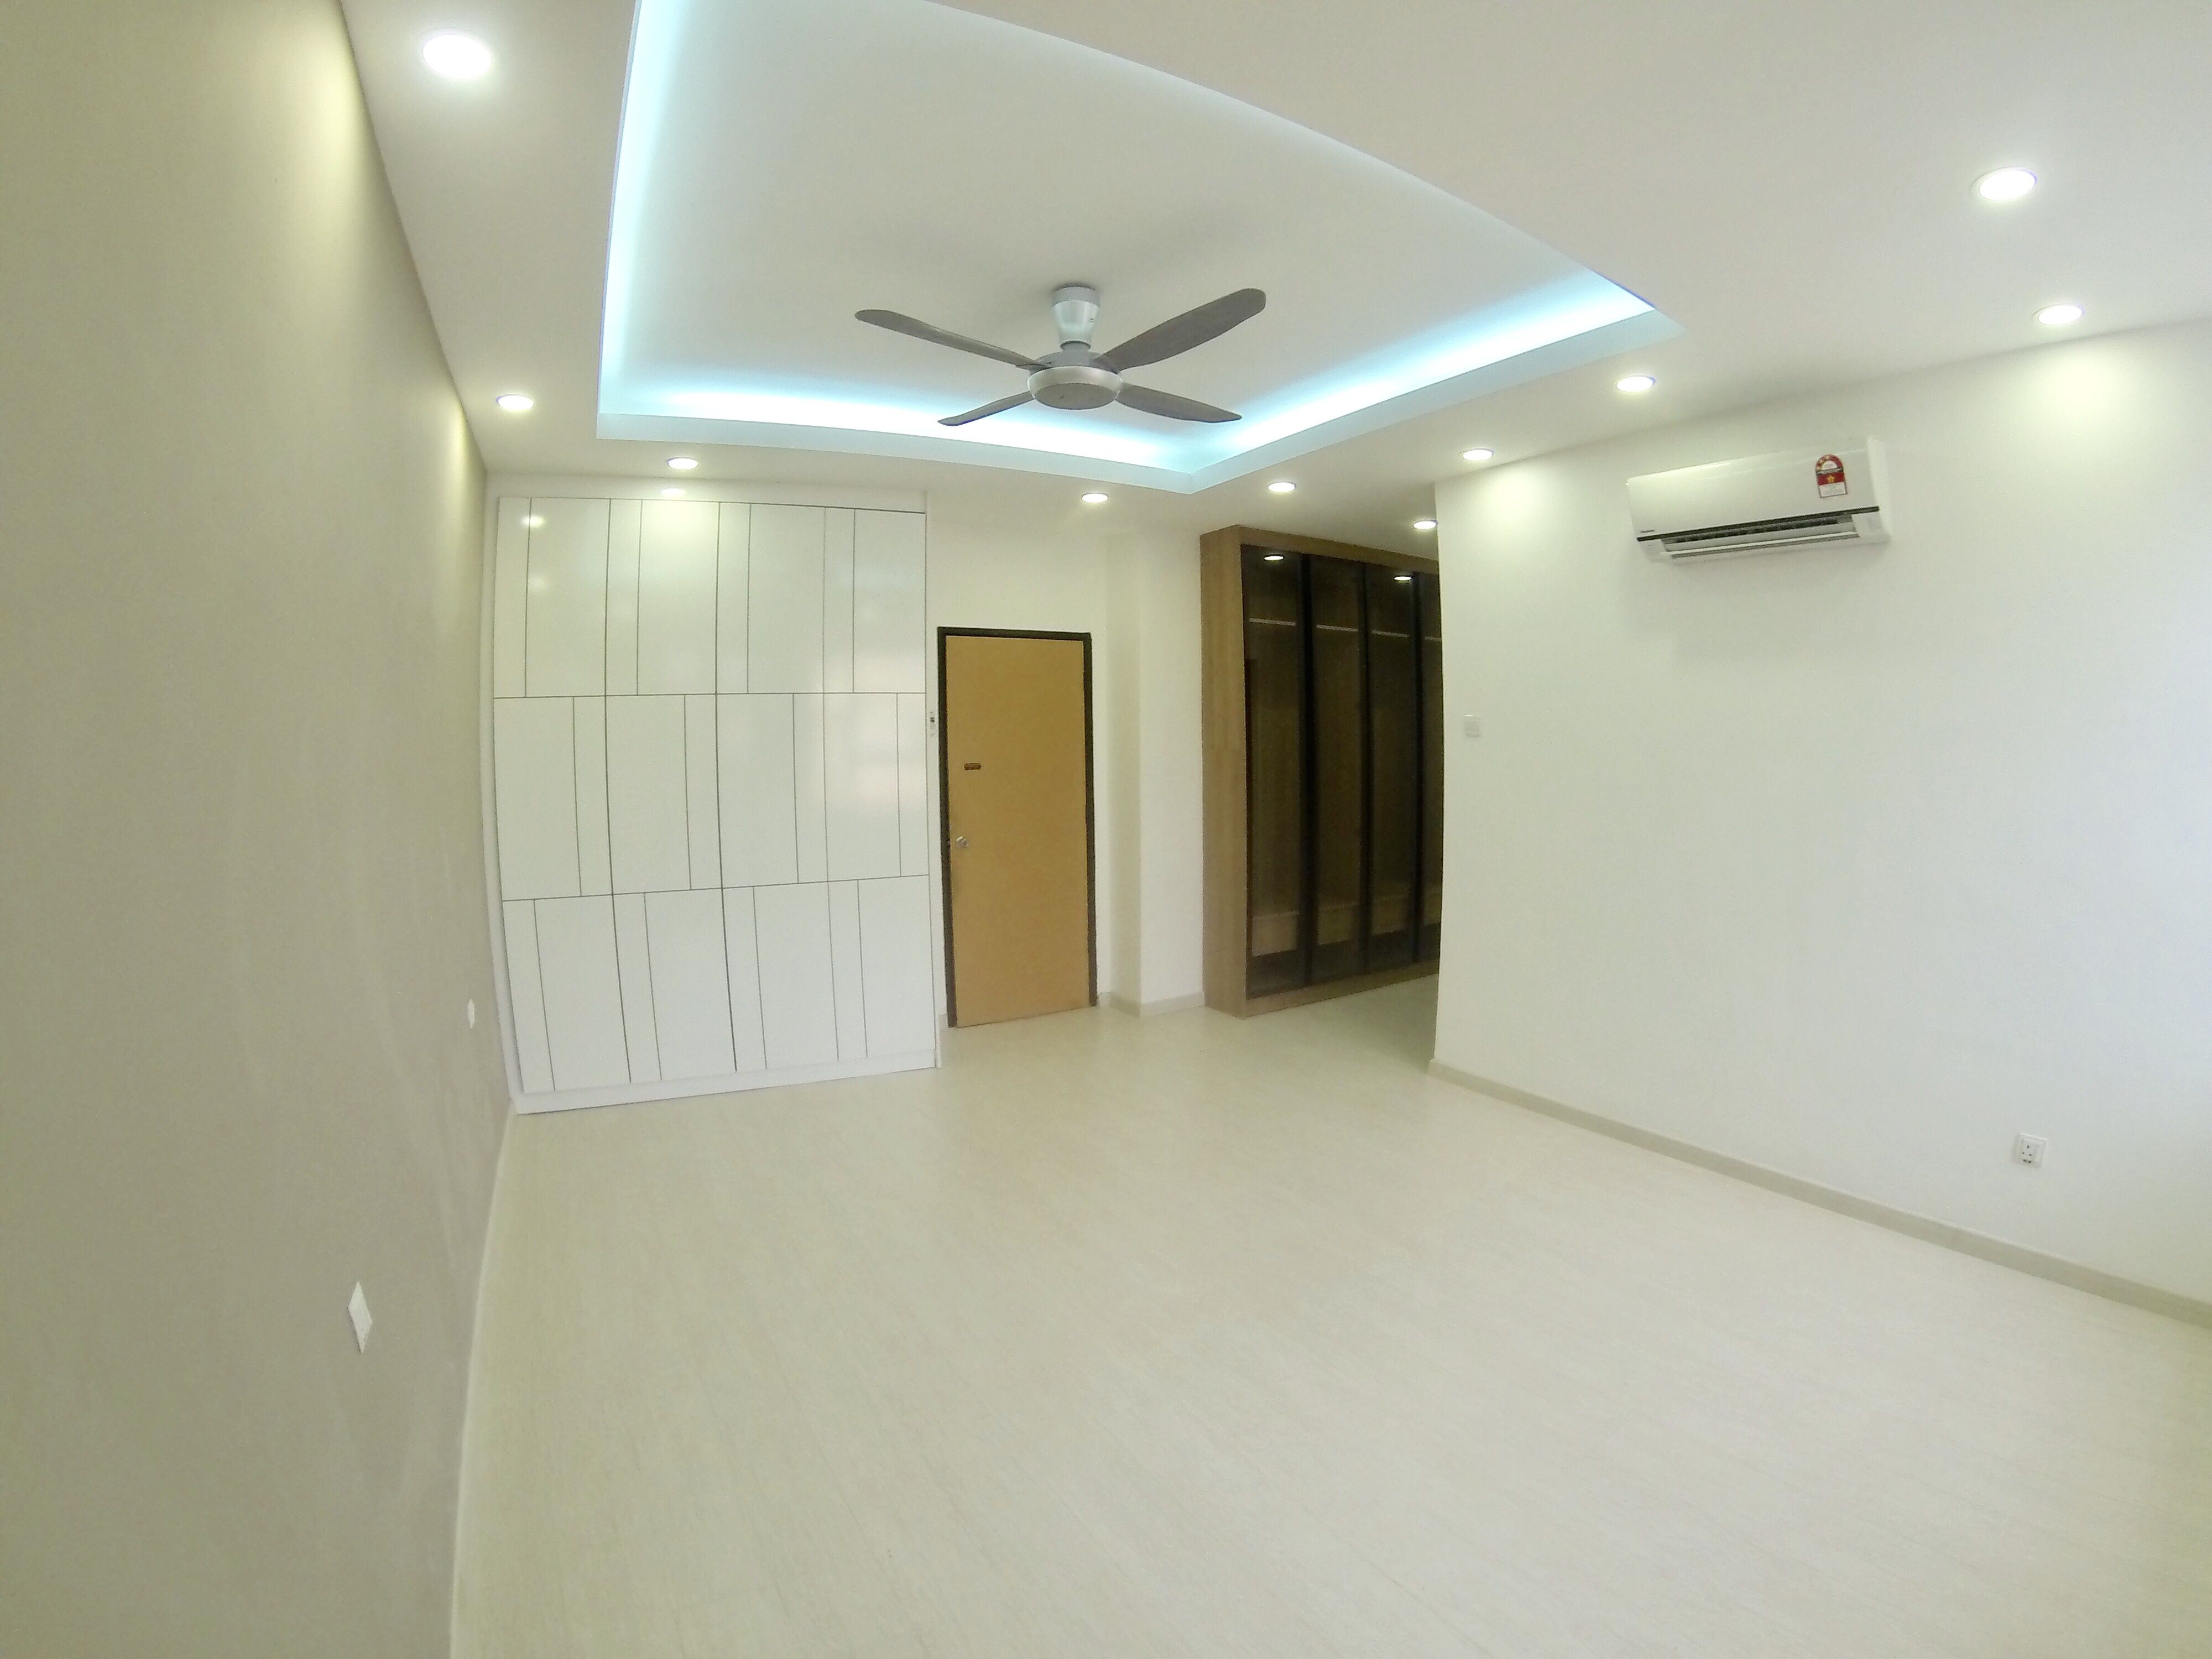 Bathroom renovation malaysia - Exterior Renovation Floor Tile Roof Truss Wall Painting Carpentry Work Laminated